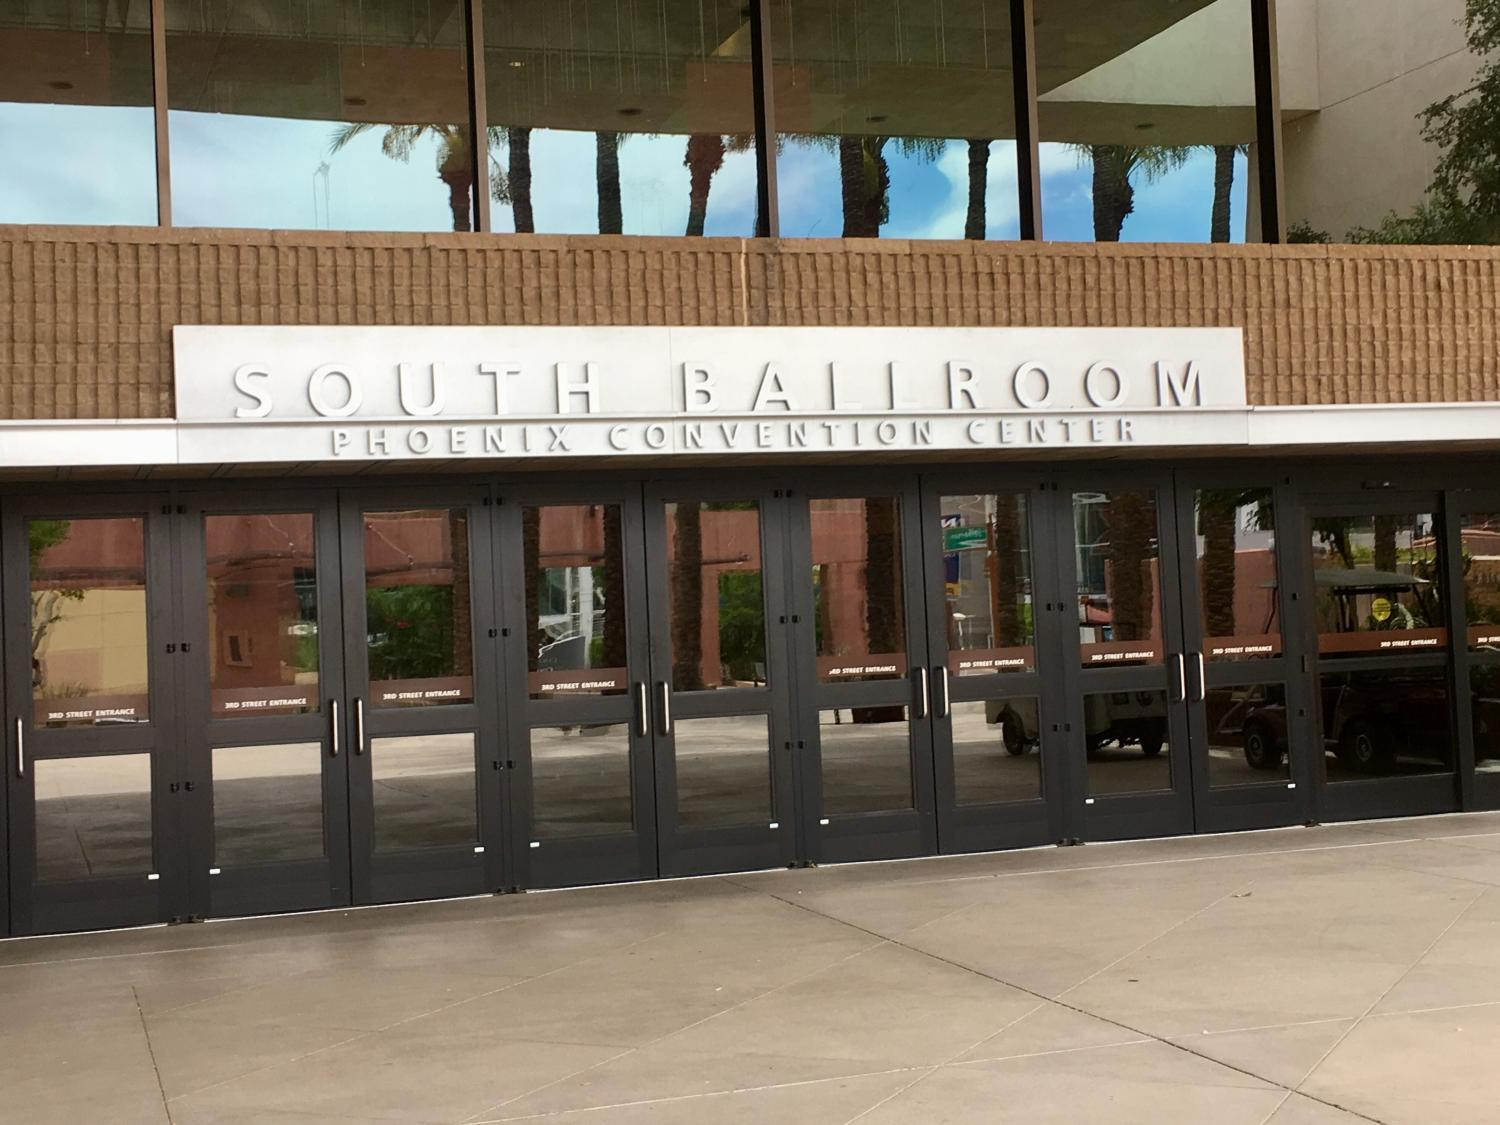 entrance to south ballroom